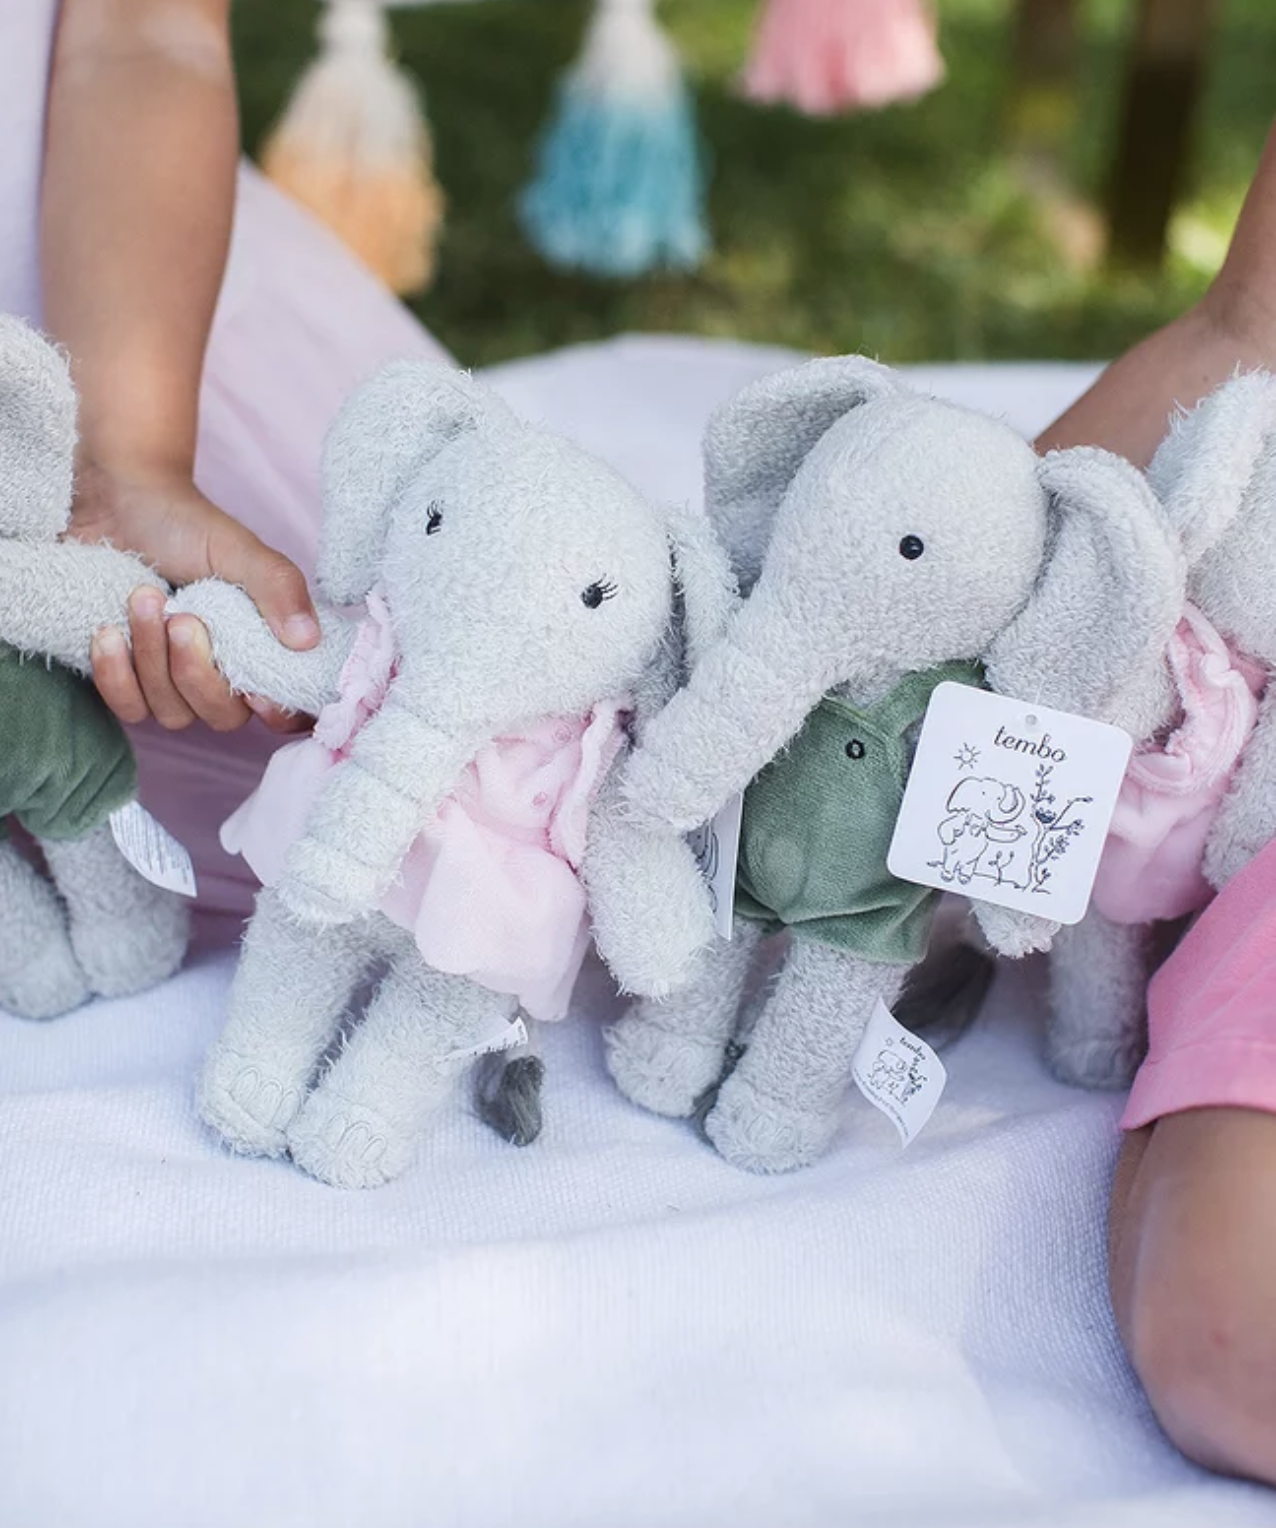 People Com These Sweet Stuffed Animals Can Help You Save Dozens Of Real Life Elephants The Elephant Project Elephant png you can download 36 free elephant png images. people com these sweet stuffed animals